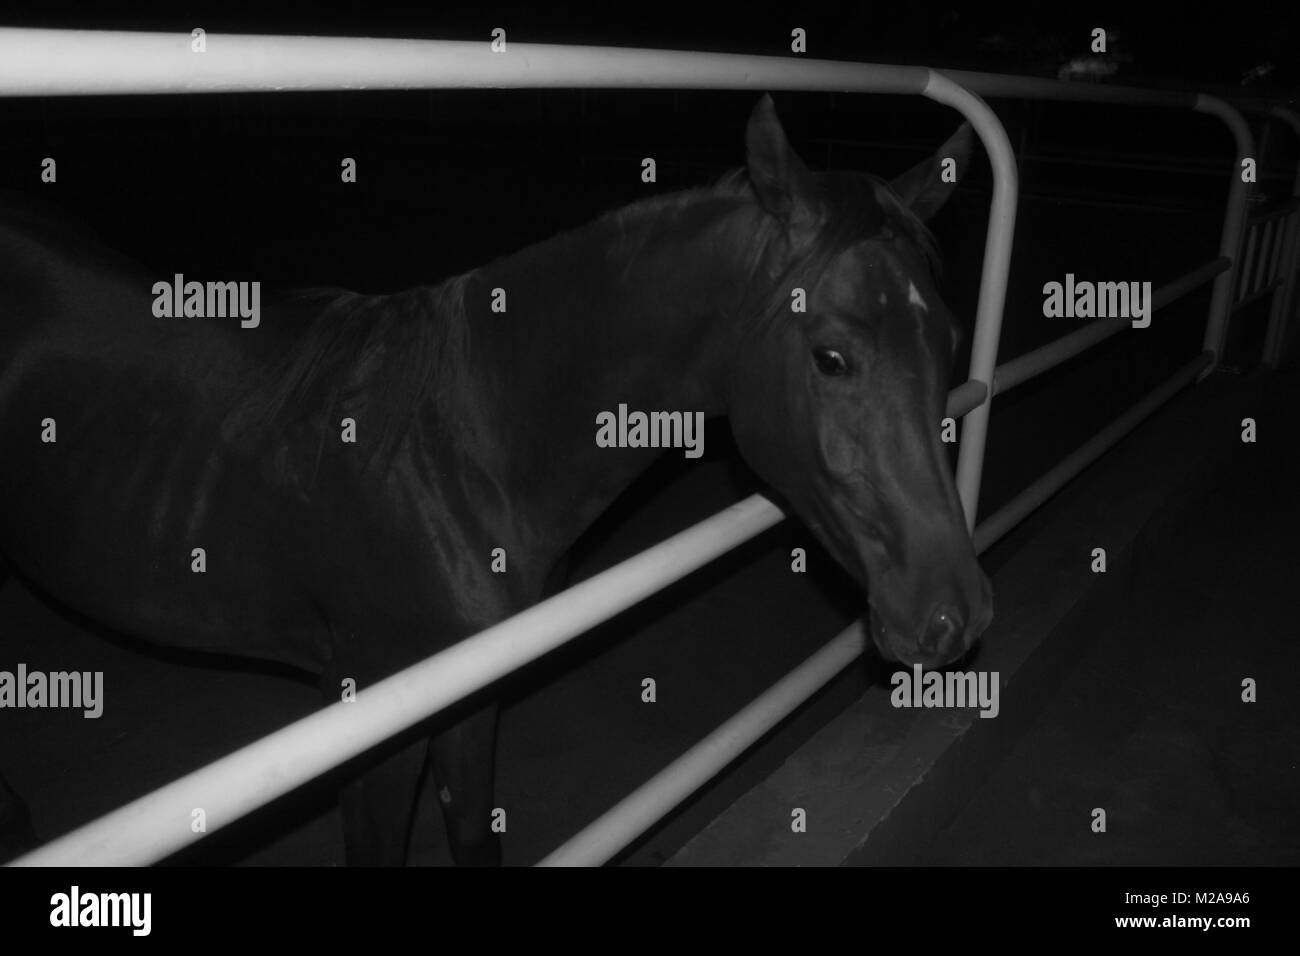 A black and white photograph of a horse popping-out of a fence at, night - Stock Image